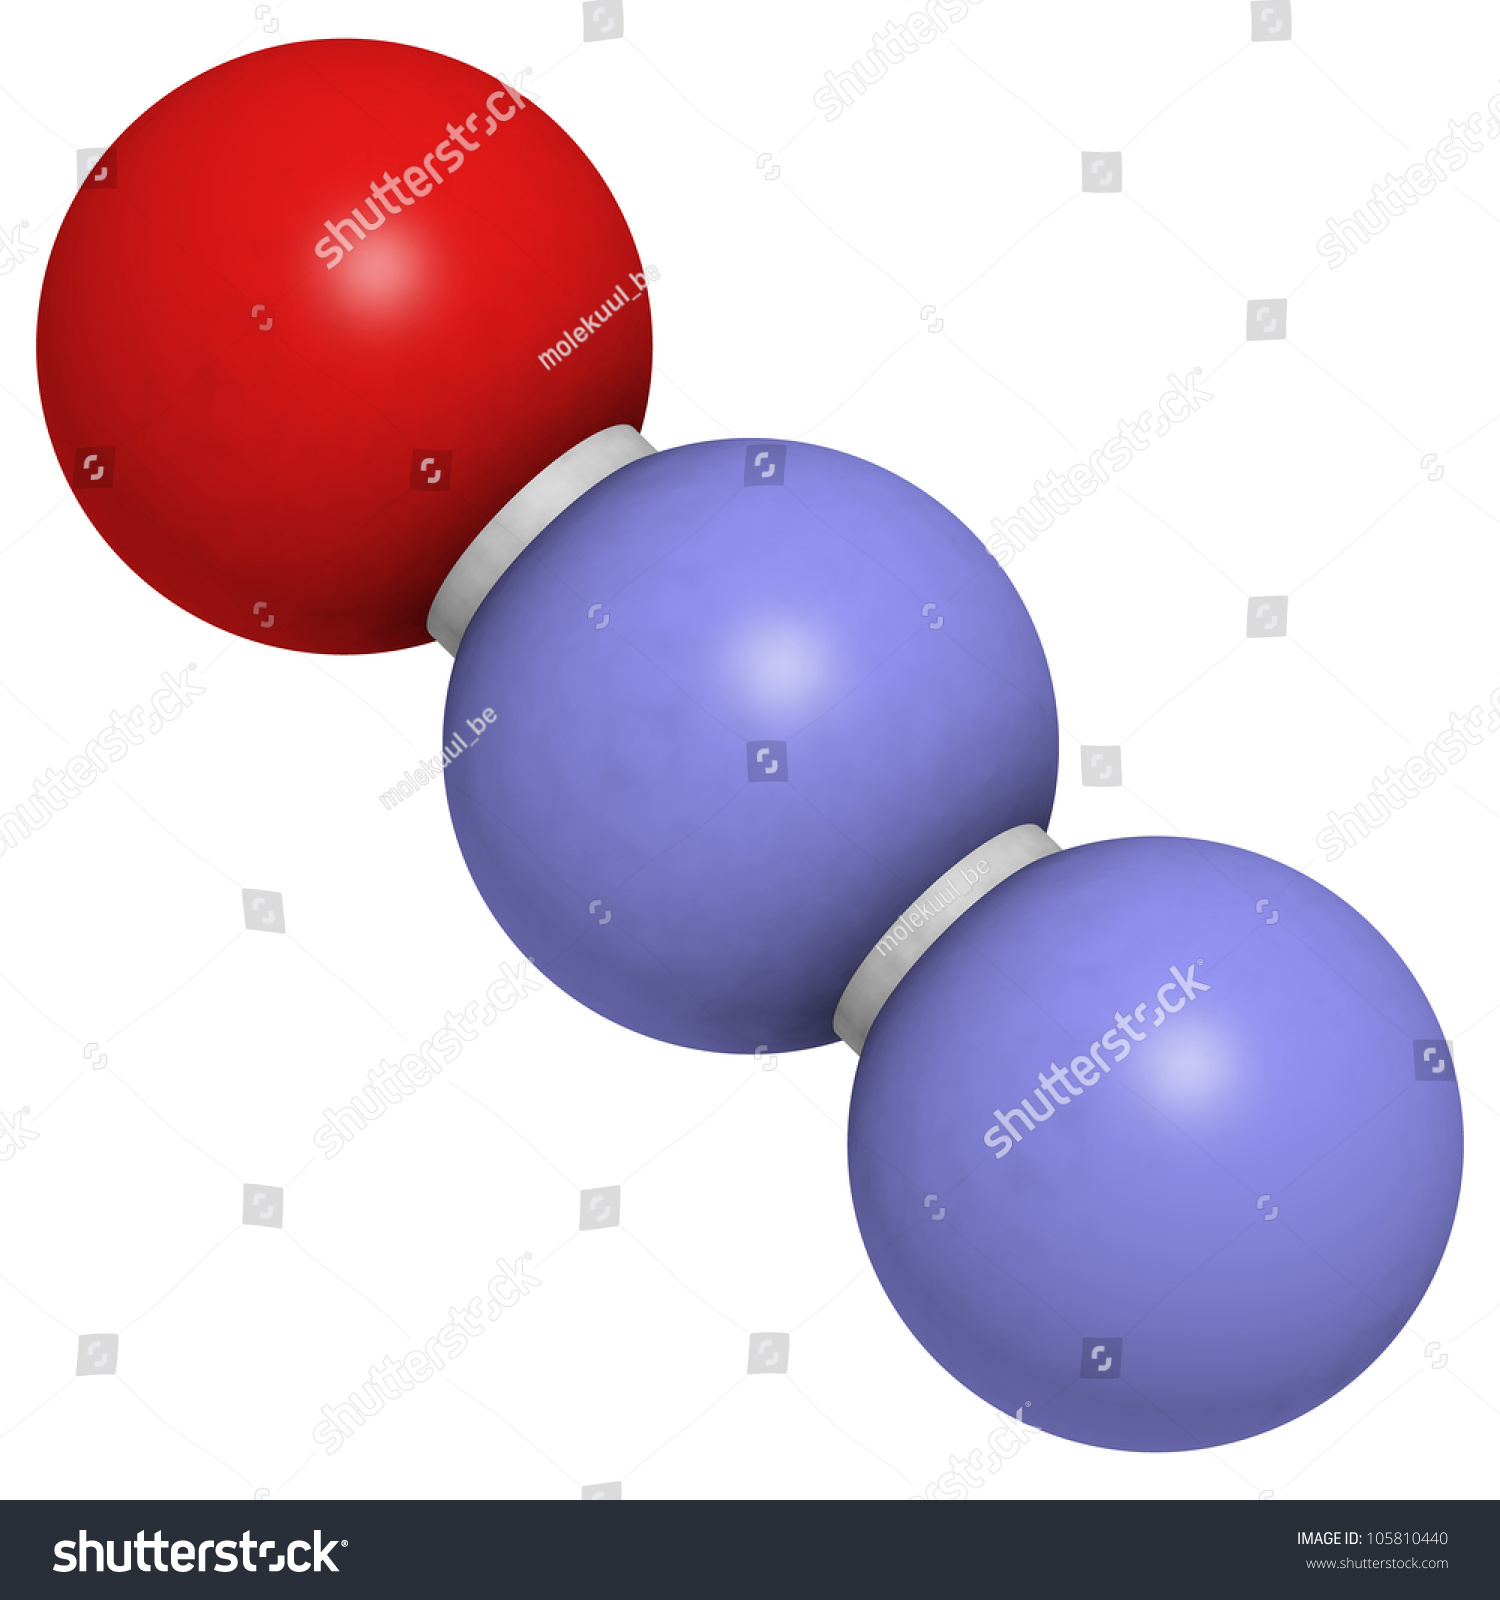 nitrous oxide n2o laughing gas sweet air molecule chemical structure this gas is used in. Black Bedroom Furniture Sets. Home Design Ideas